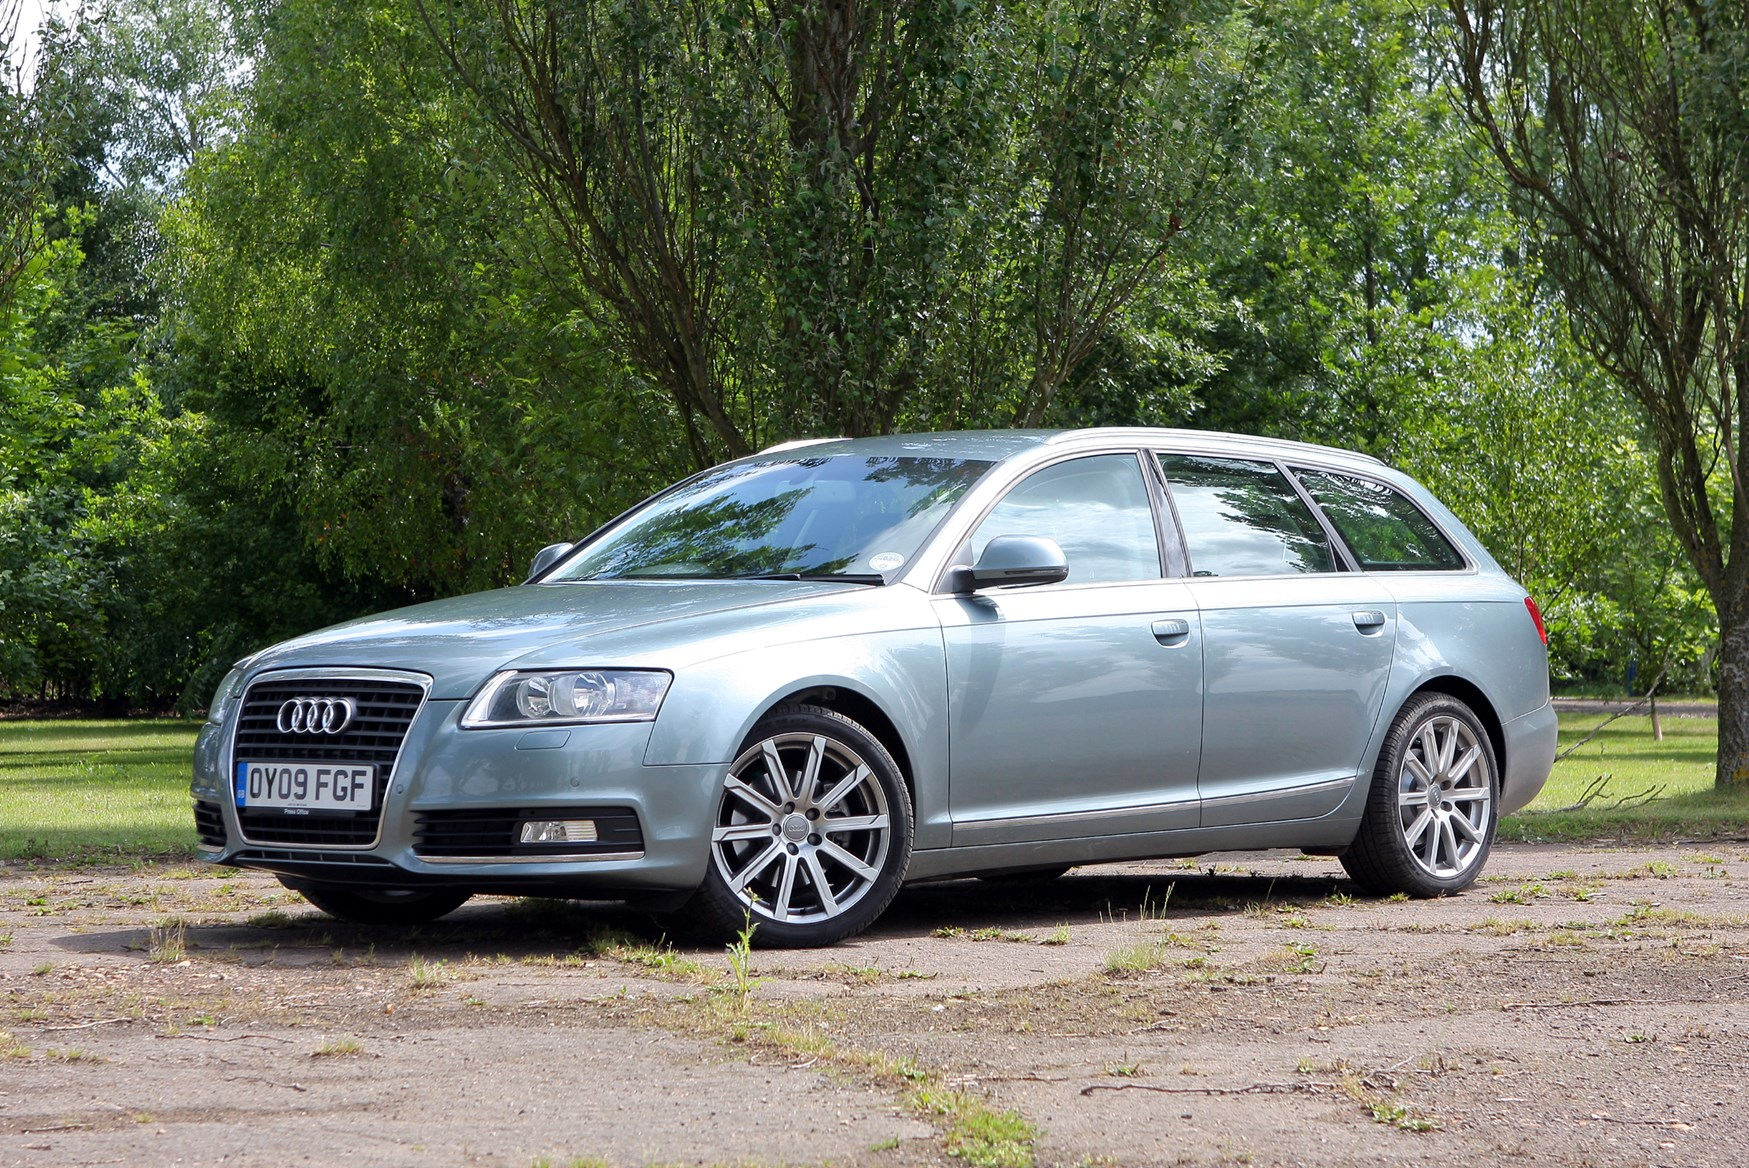 Audi a6 27 tdi estate for sale 14